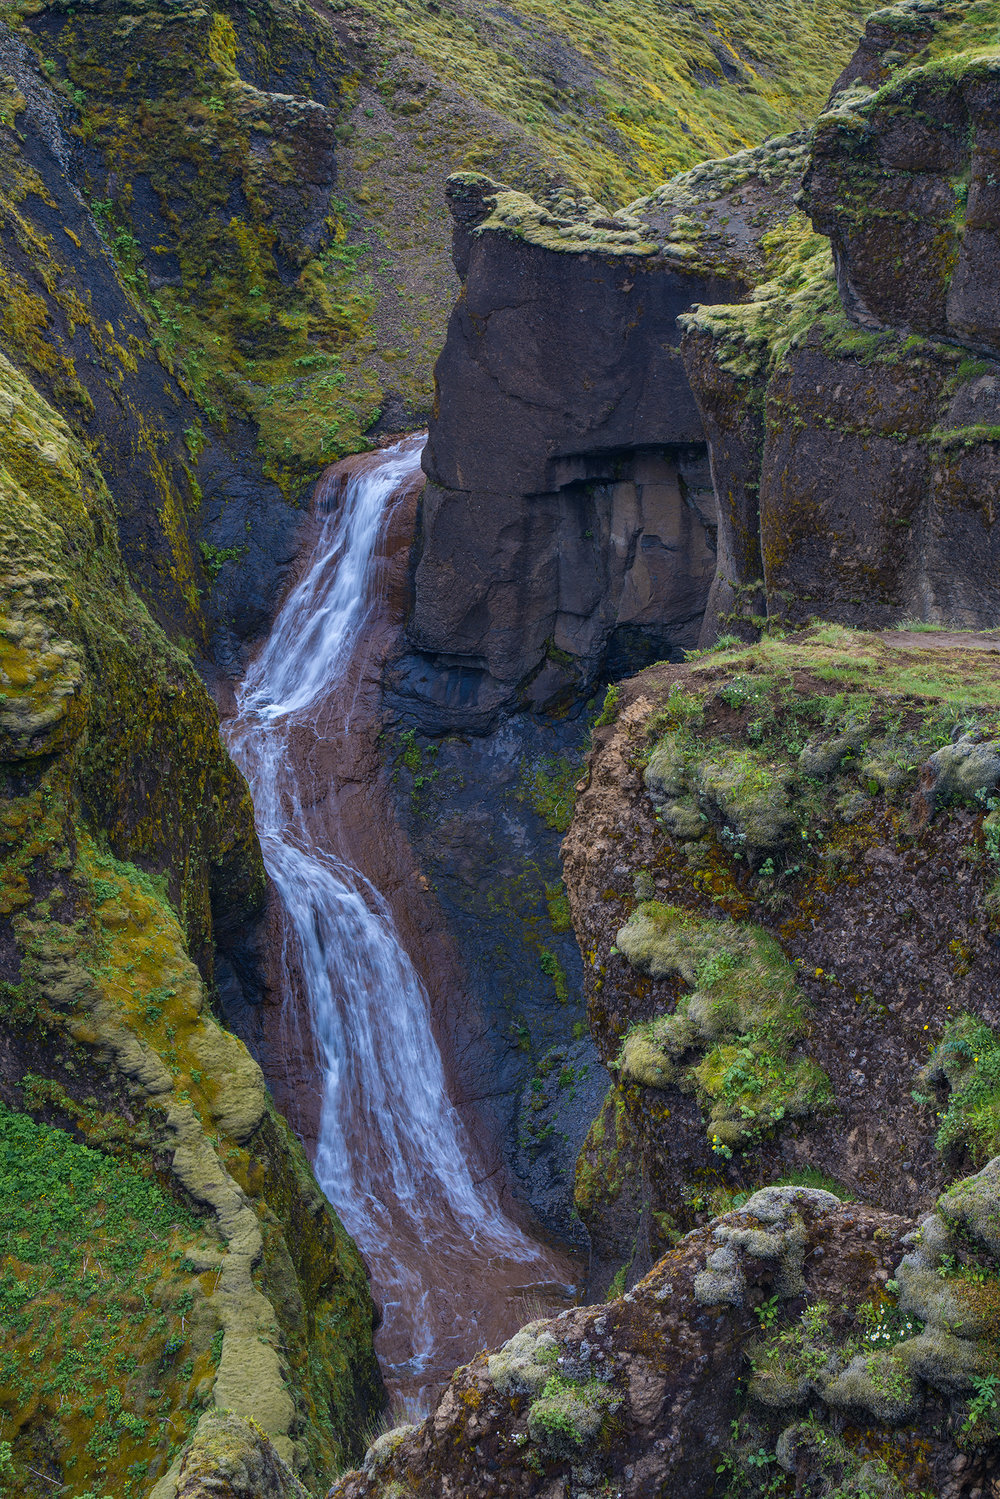 The Falls at Fjadrargljufur